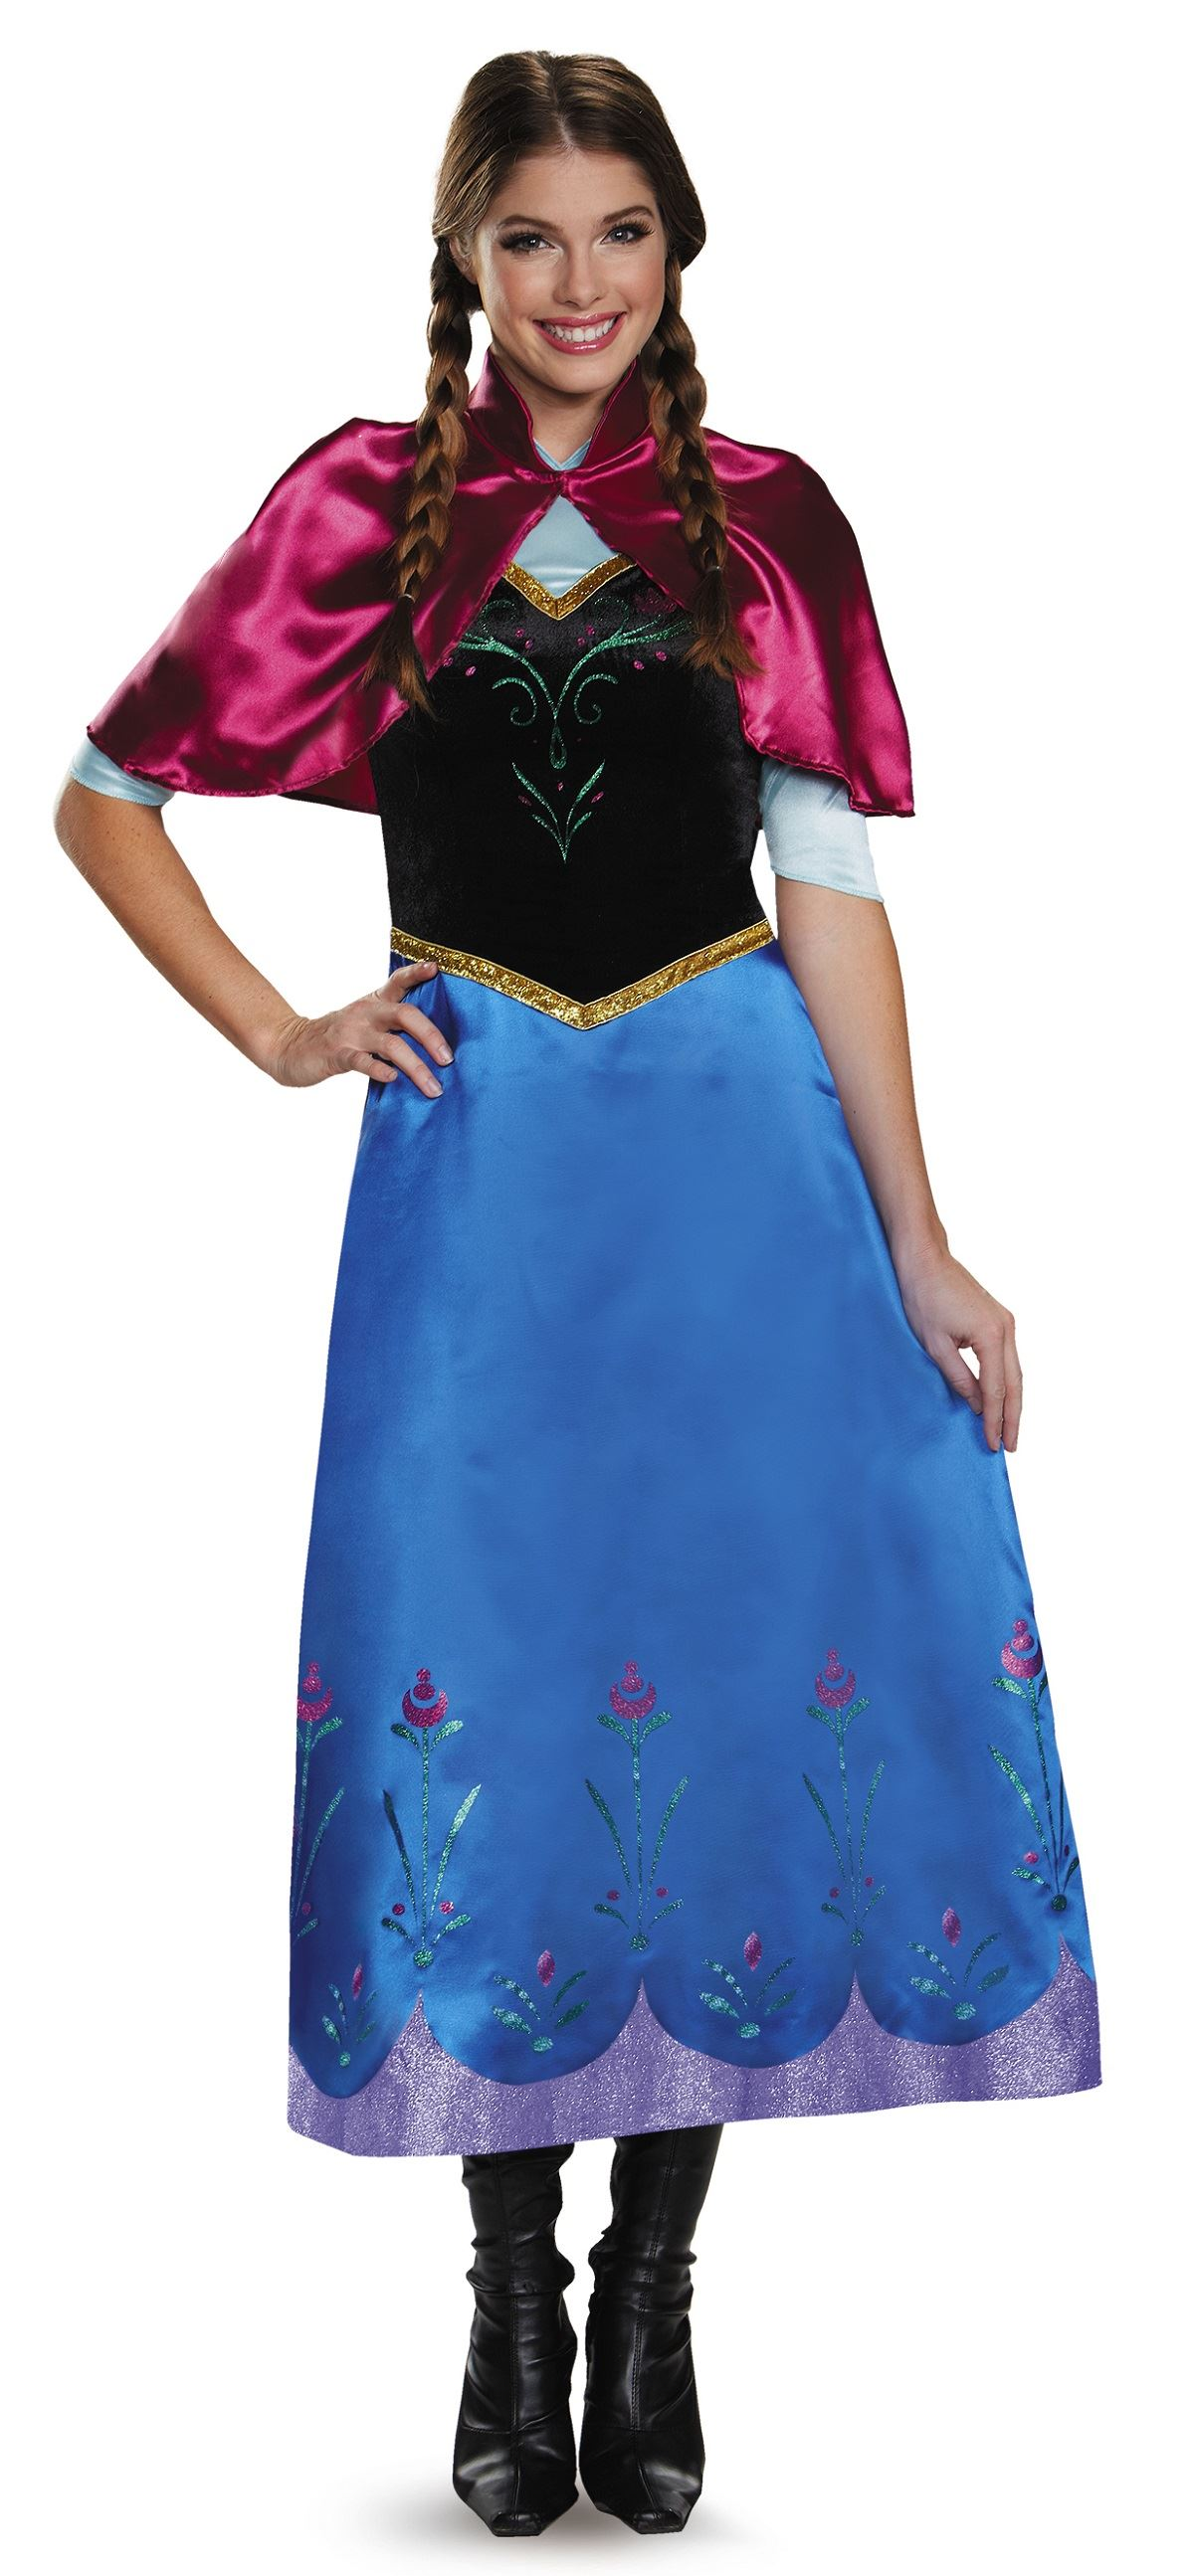 Super selection of Costumes and Halloween costumes for adults, kids, babies and Free Delivery · Ships From Canada · Huge SelectionStyles: Womens, Mens, Boys, Girls, Baby & Toddler, Plus Size, Big and Tall.